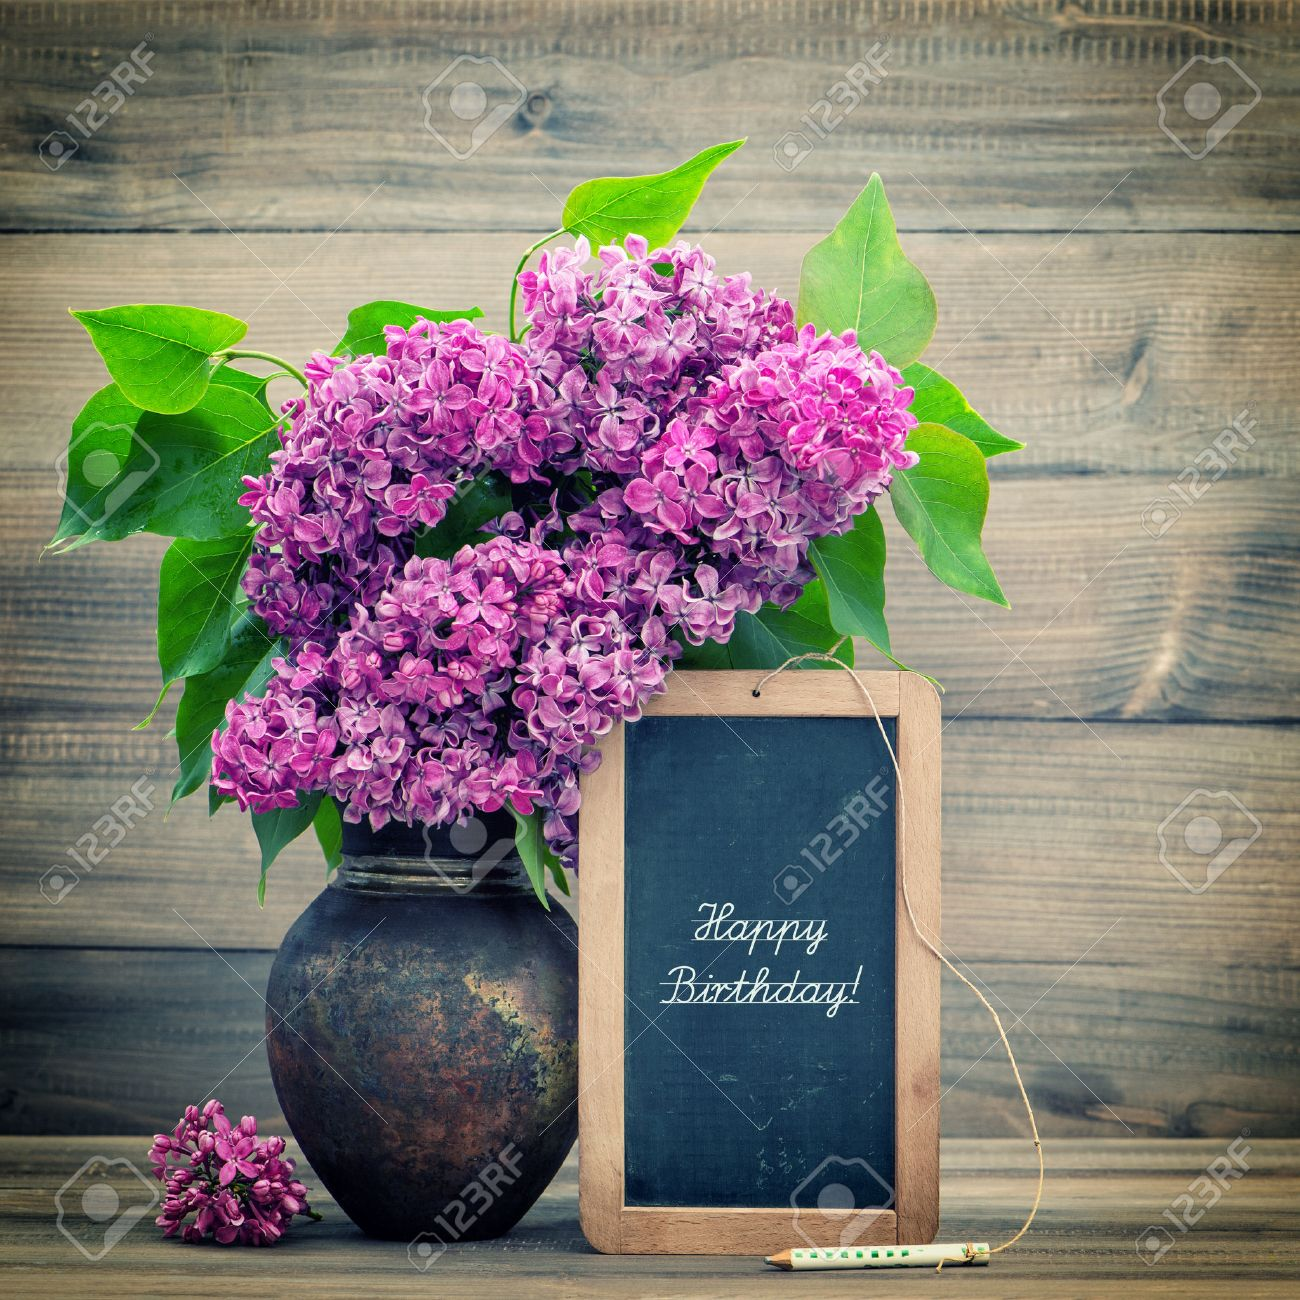 Birthday flowers images free bouquet of lilac flowers on wooden blackboard with sample text happy birthday retro style toned pict izmirmasajfo